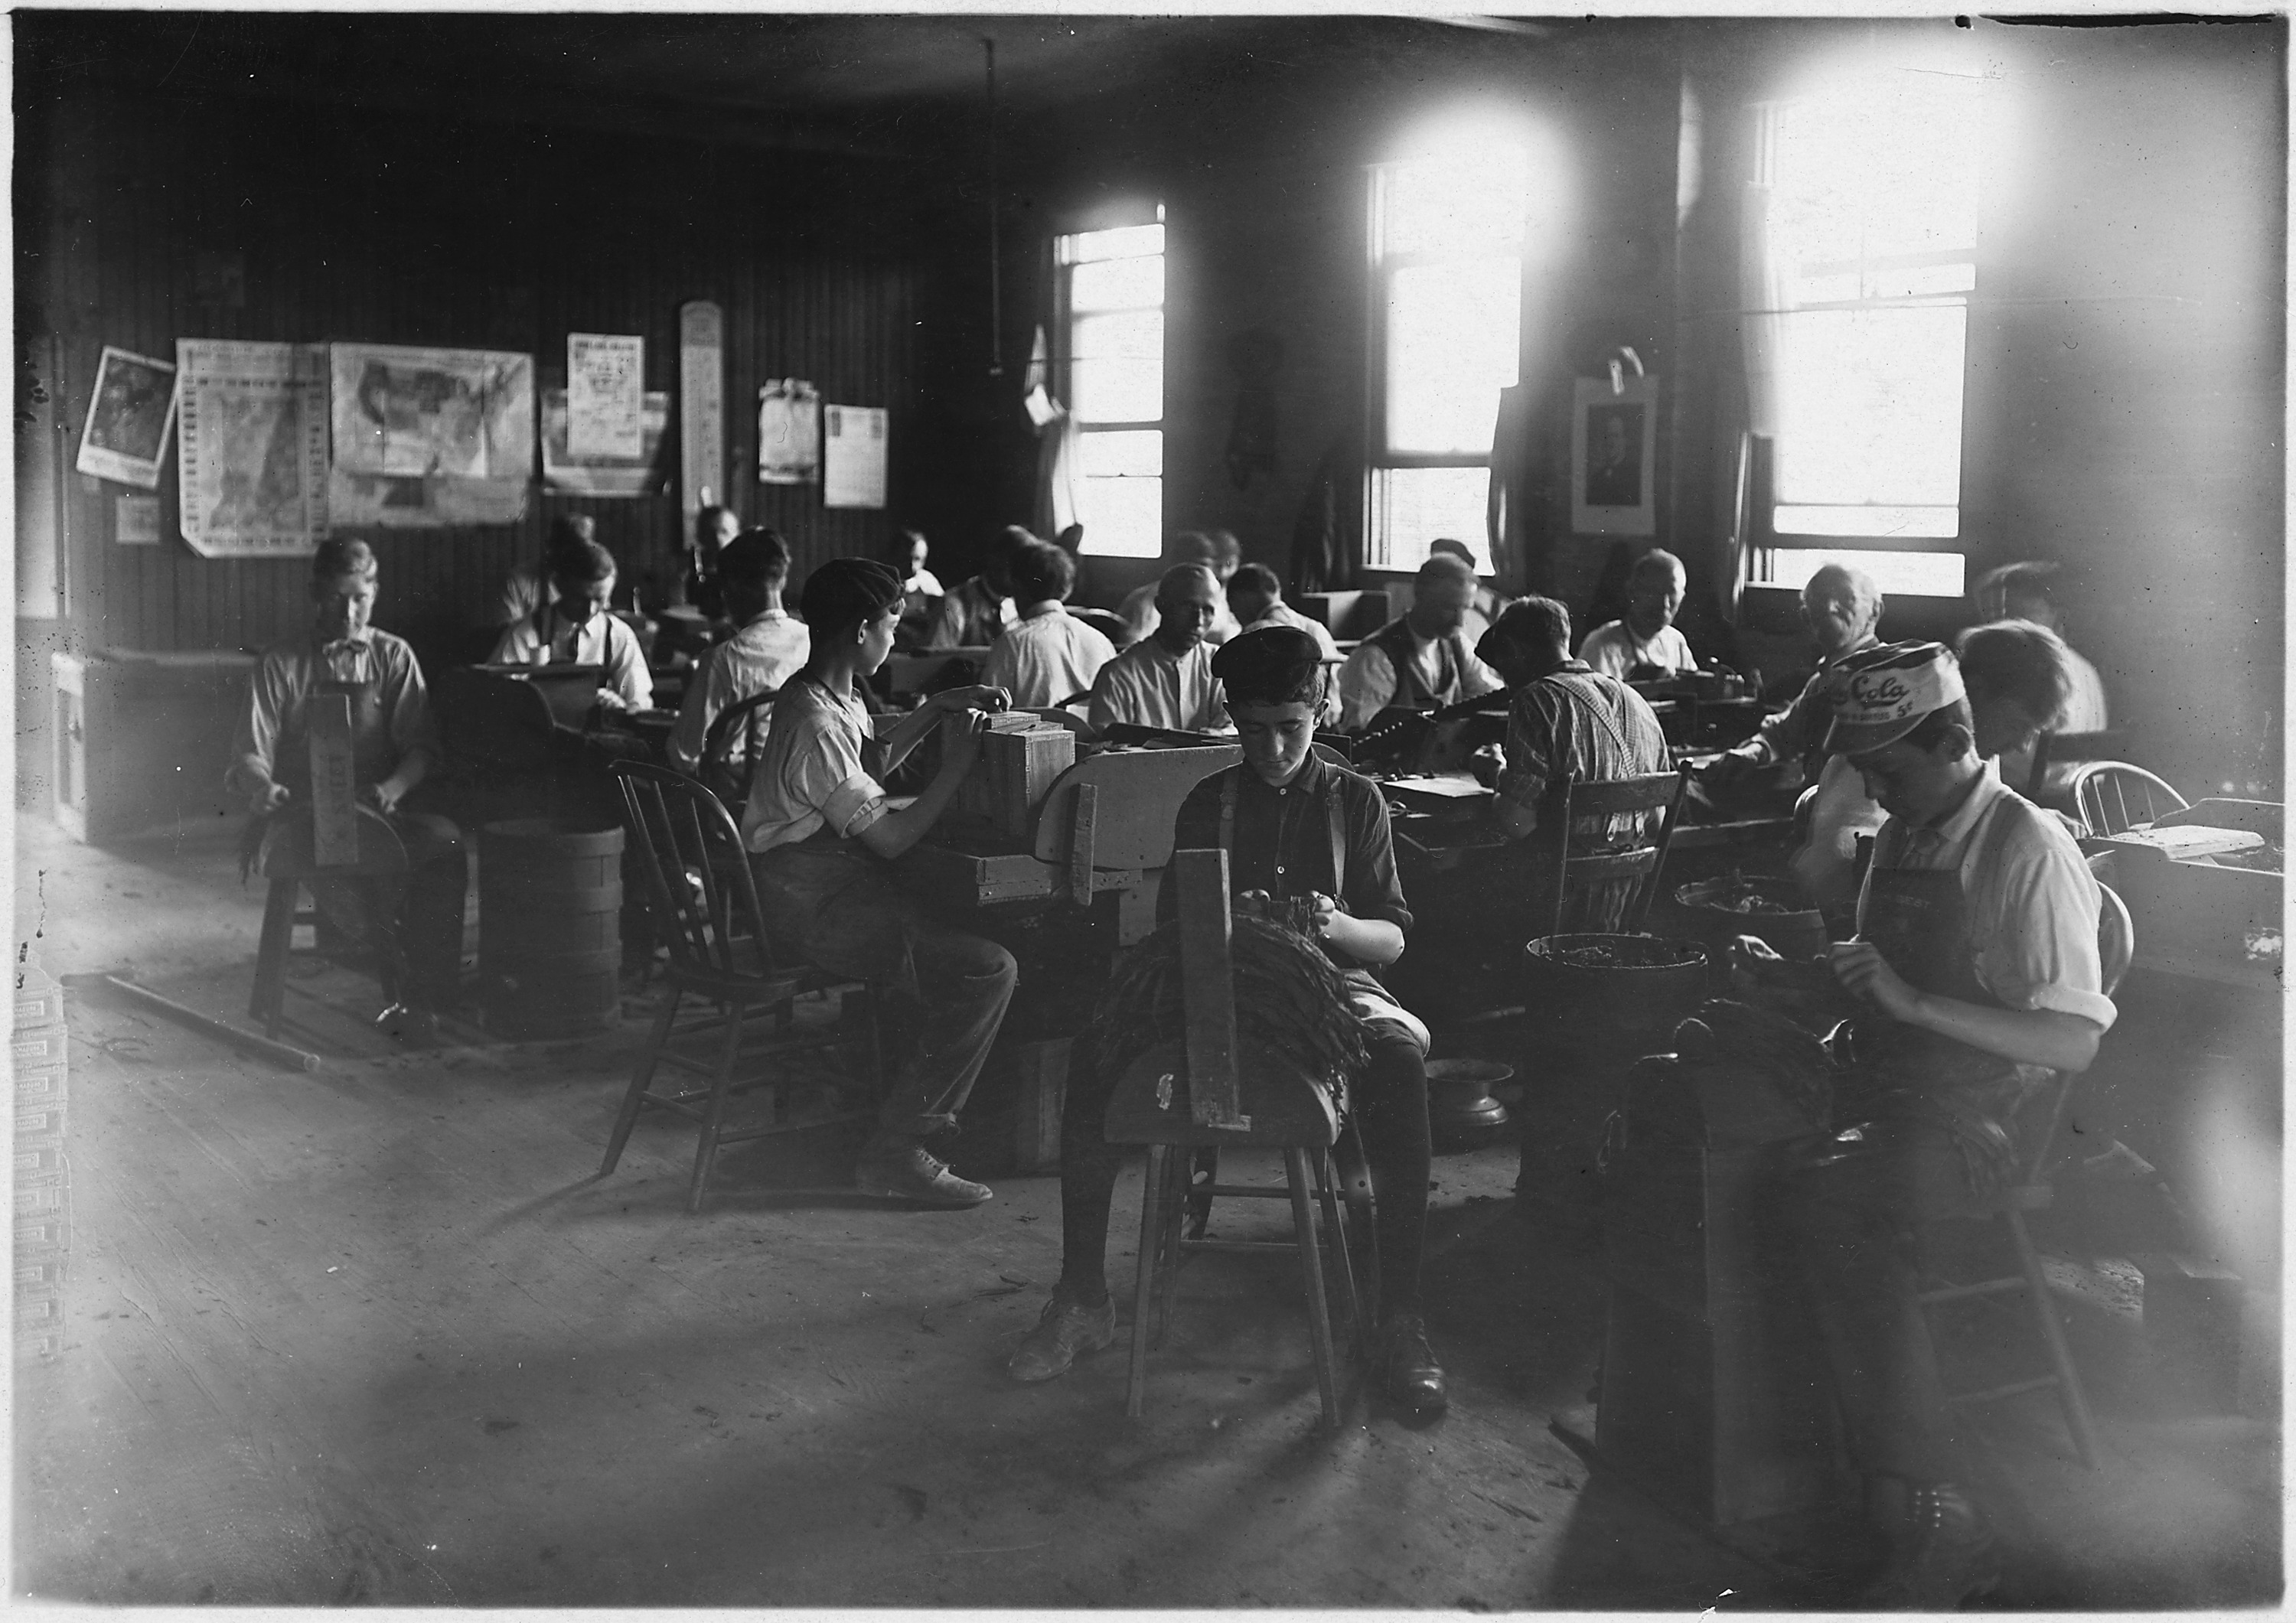 File:Cigar factory. Boys in foreground. Indianapolis, Ind ...